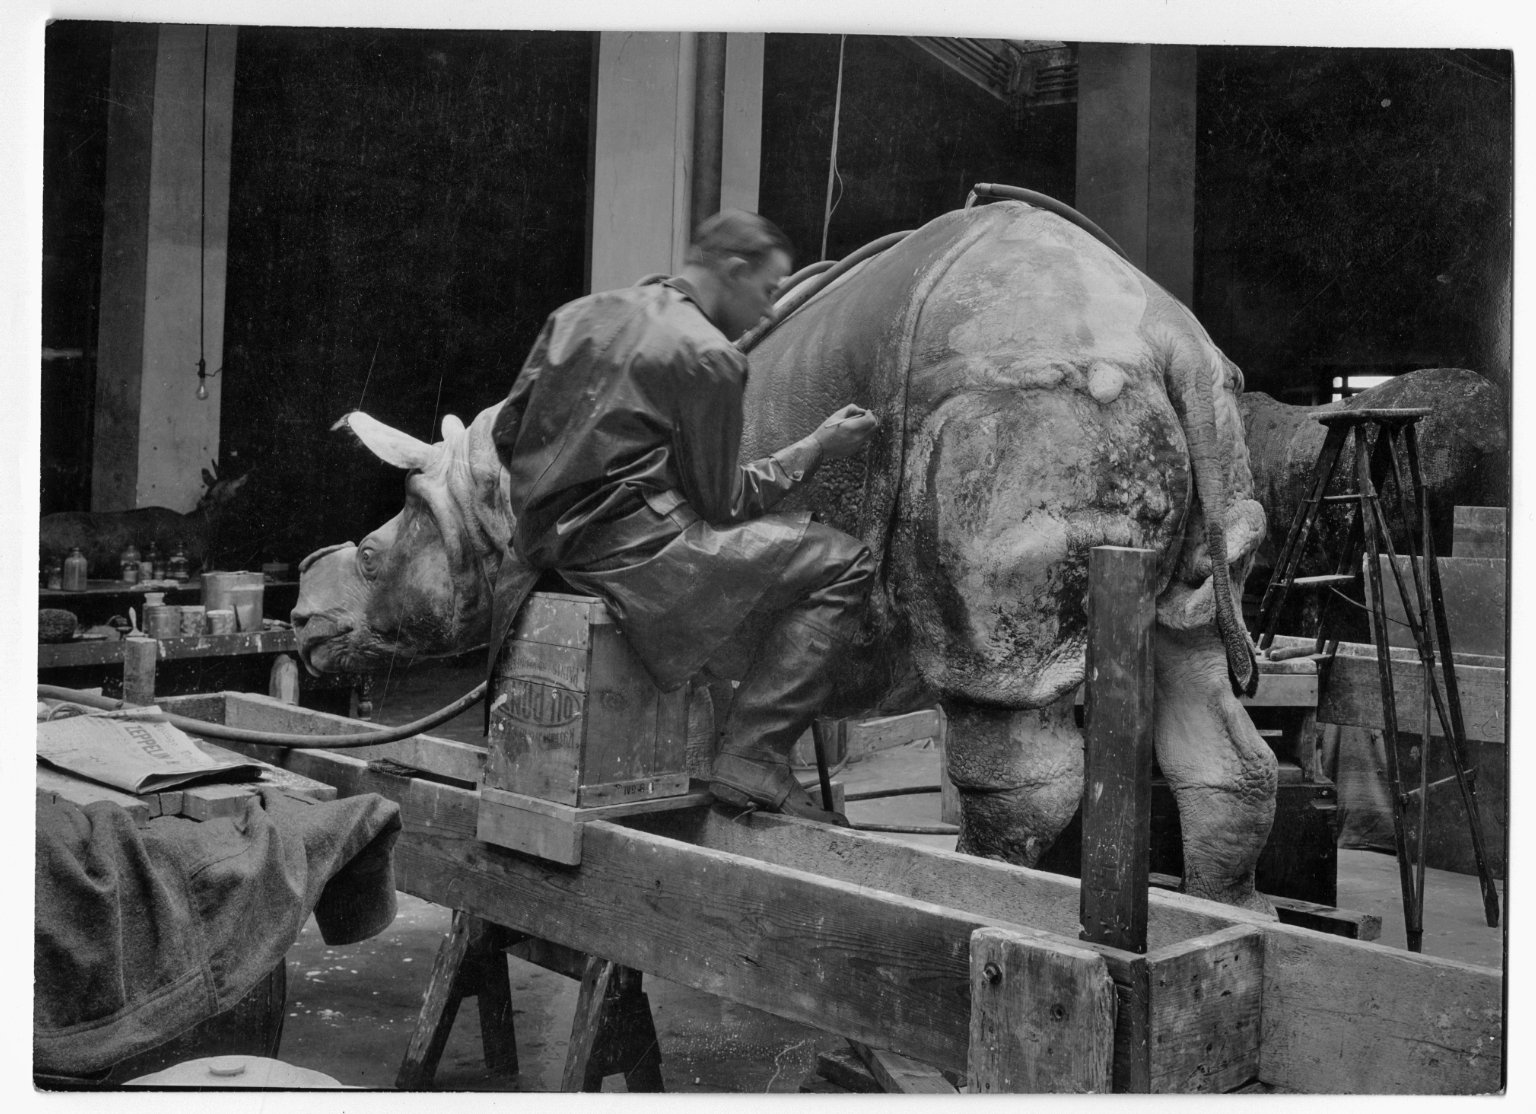 Rhinoceros mount being prepared for exhibit The Field Museum